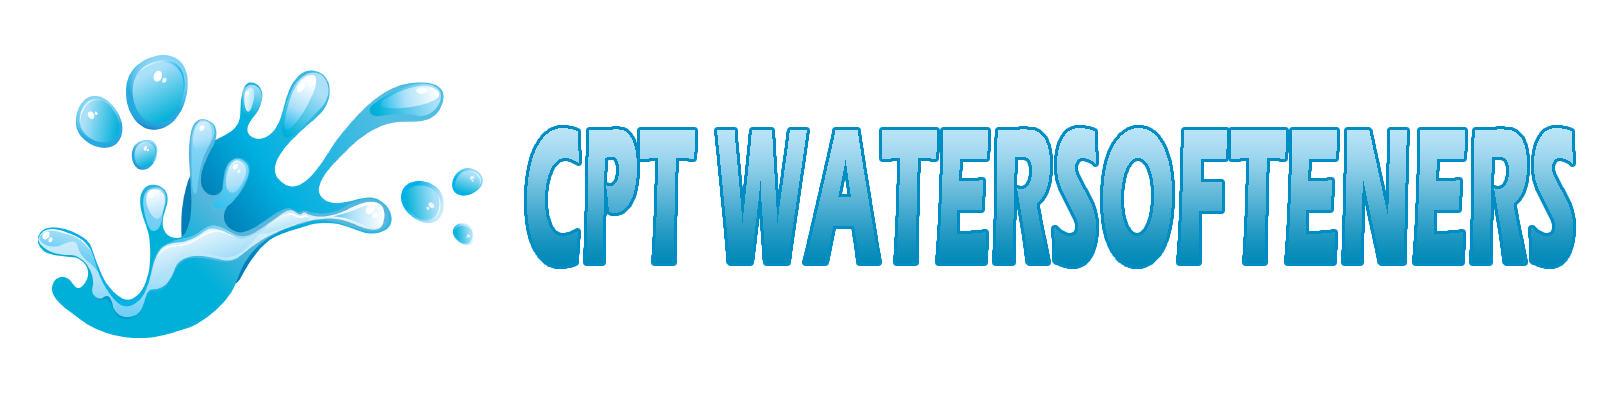 logo cptwatersofteners 1